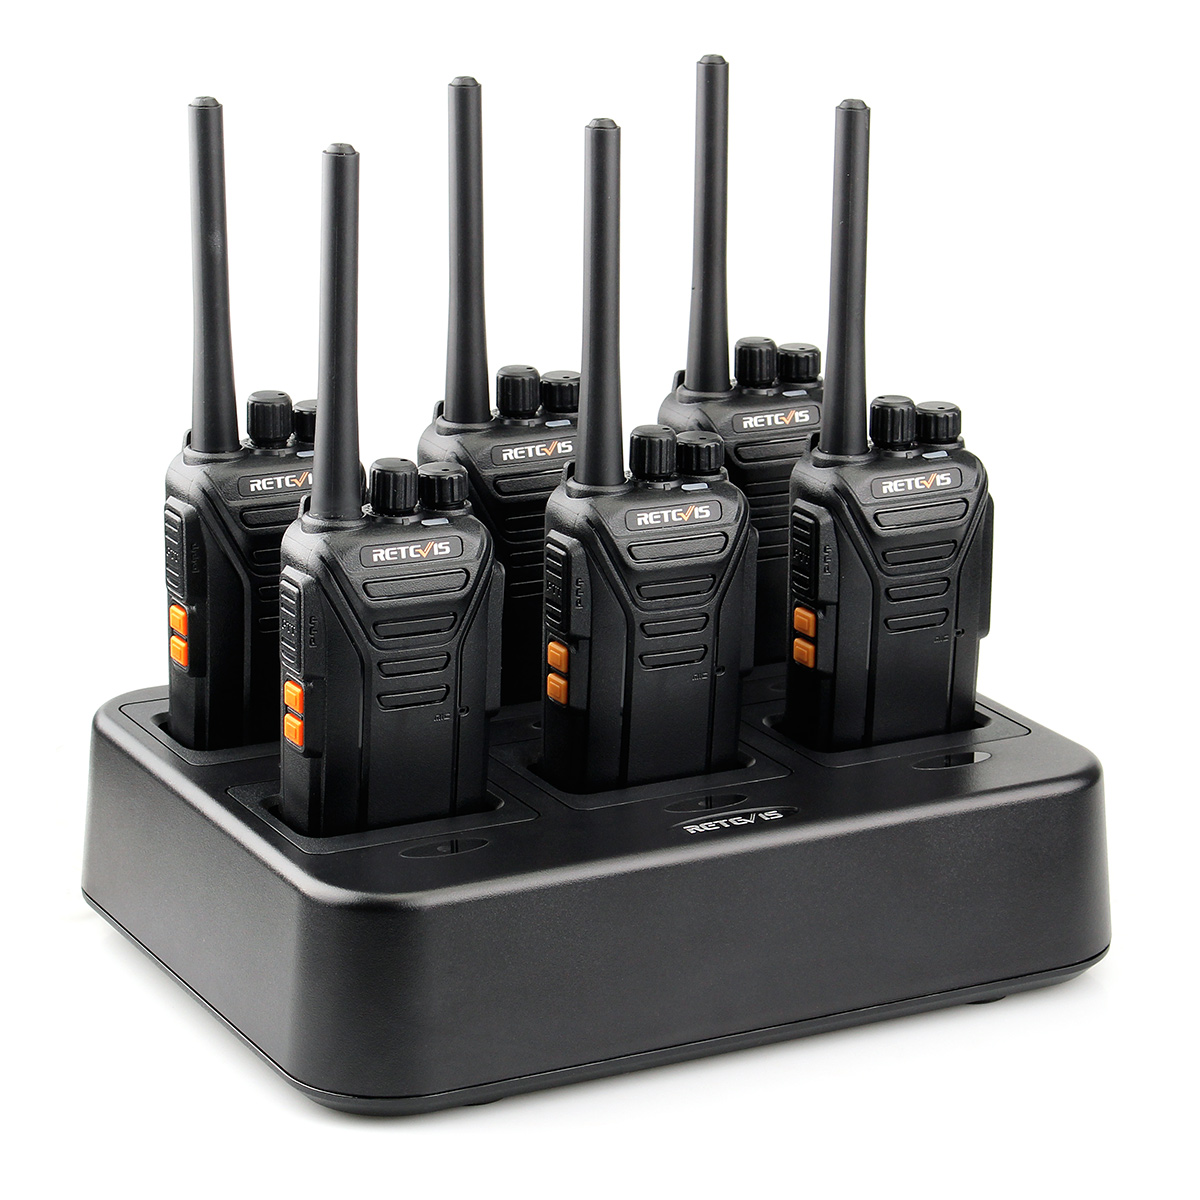 6PACK Retevis RT27 22CH FRS license-free Walkie Talkie UHF VOX Two way Radio For Shopping Mall <strong>Communication</strong> W/ six way charger